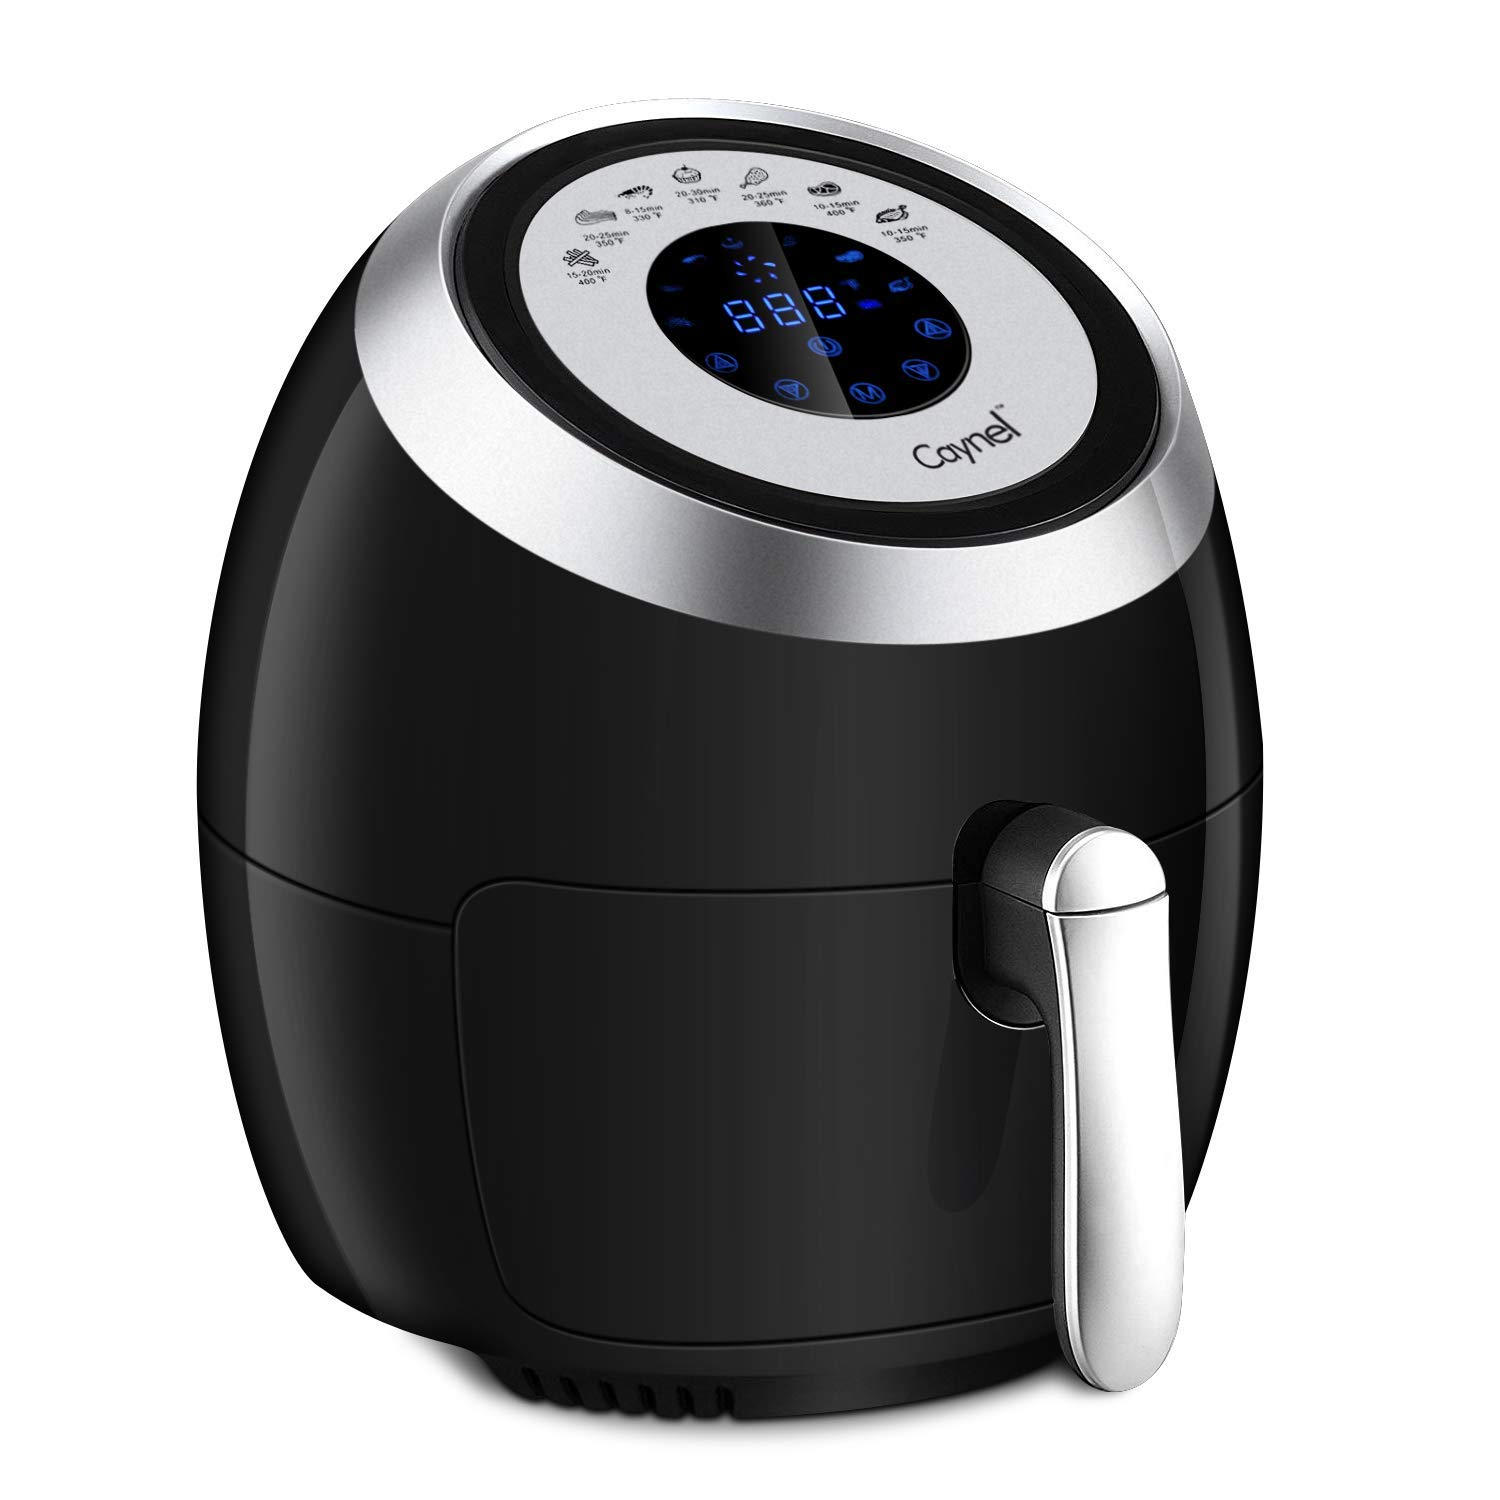 CAYNEL Digital Air Fryer XL (3.8QT) Touchscreen Programmable Deep Oven Cooker with 7 Cook Presets, Detachable Double Basket - Black, 1500W